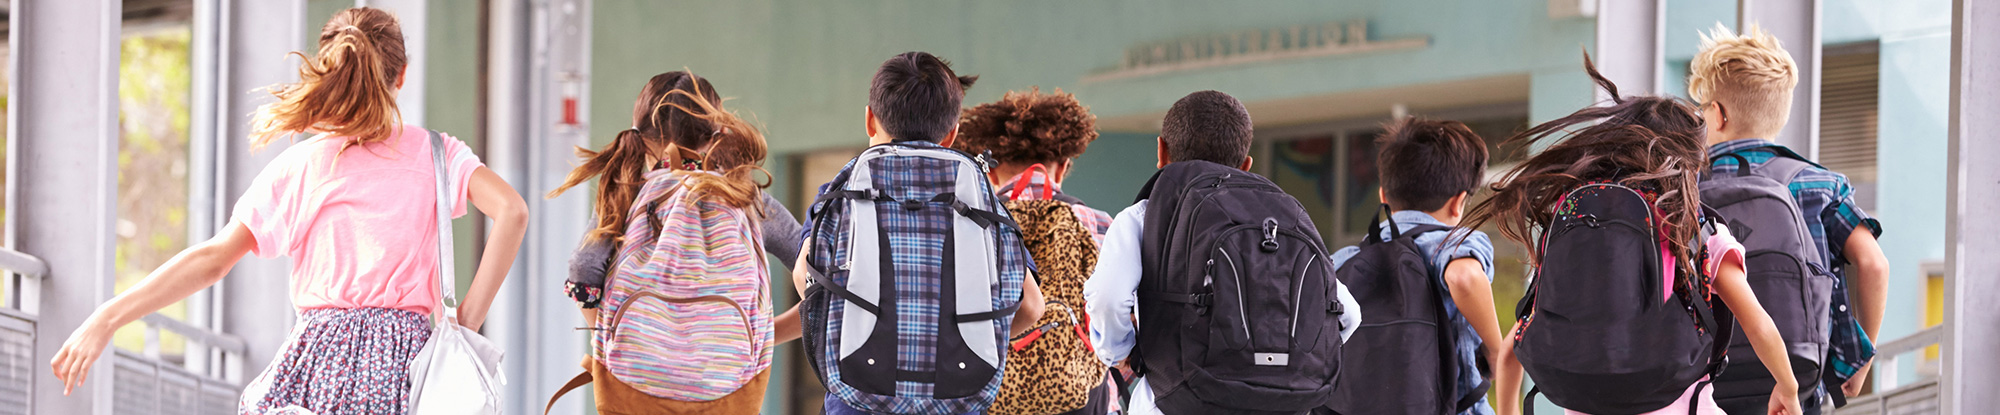 Students with backpacks running